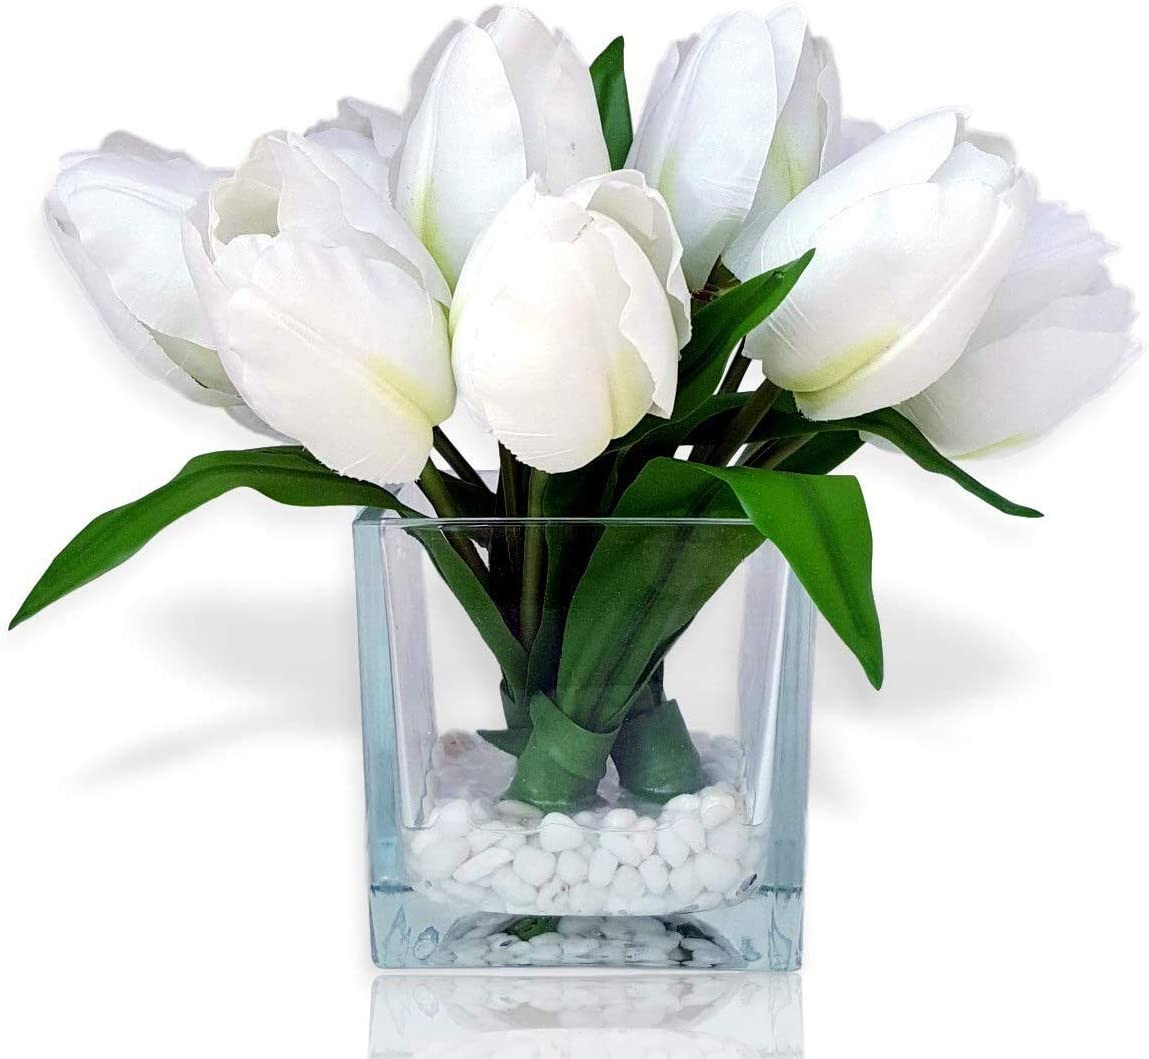 Basik Nature Artificial Flowers Tulip Floral Arrangement in Vase - Tulips Artificial Silk Flowers for Decoration (White)